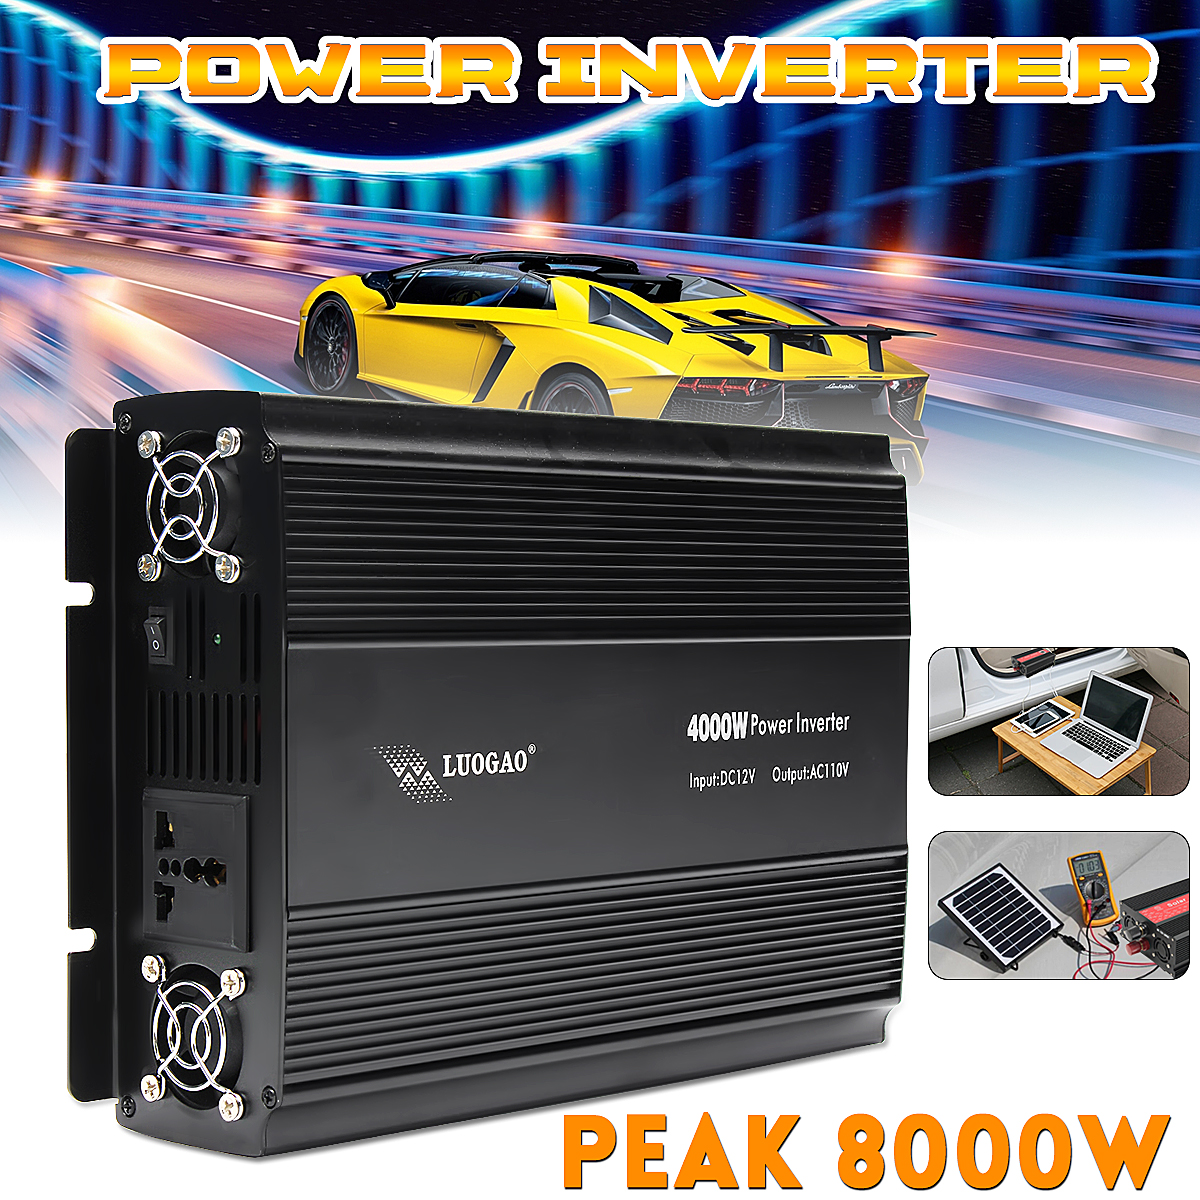 Power Inverter P eak 8000W 4000W DC 12V To AC 220V /110V Car Adapter CPU Charger Square Wave Modified Pure Sine with Cooling Fan professional 3000w power inverter dc 12v to ac 110v 220v with led indicator light fan cooling universal socket car converter